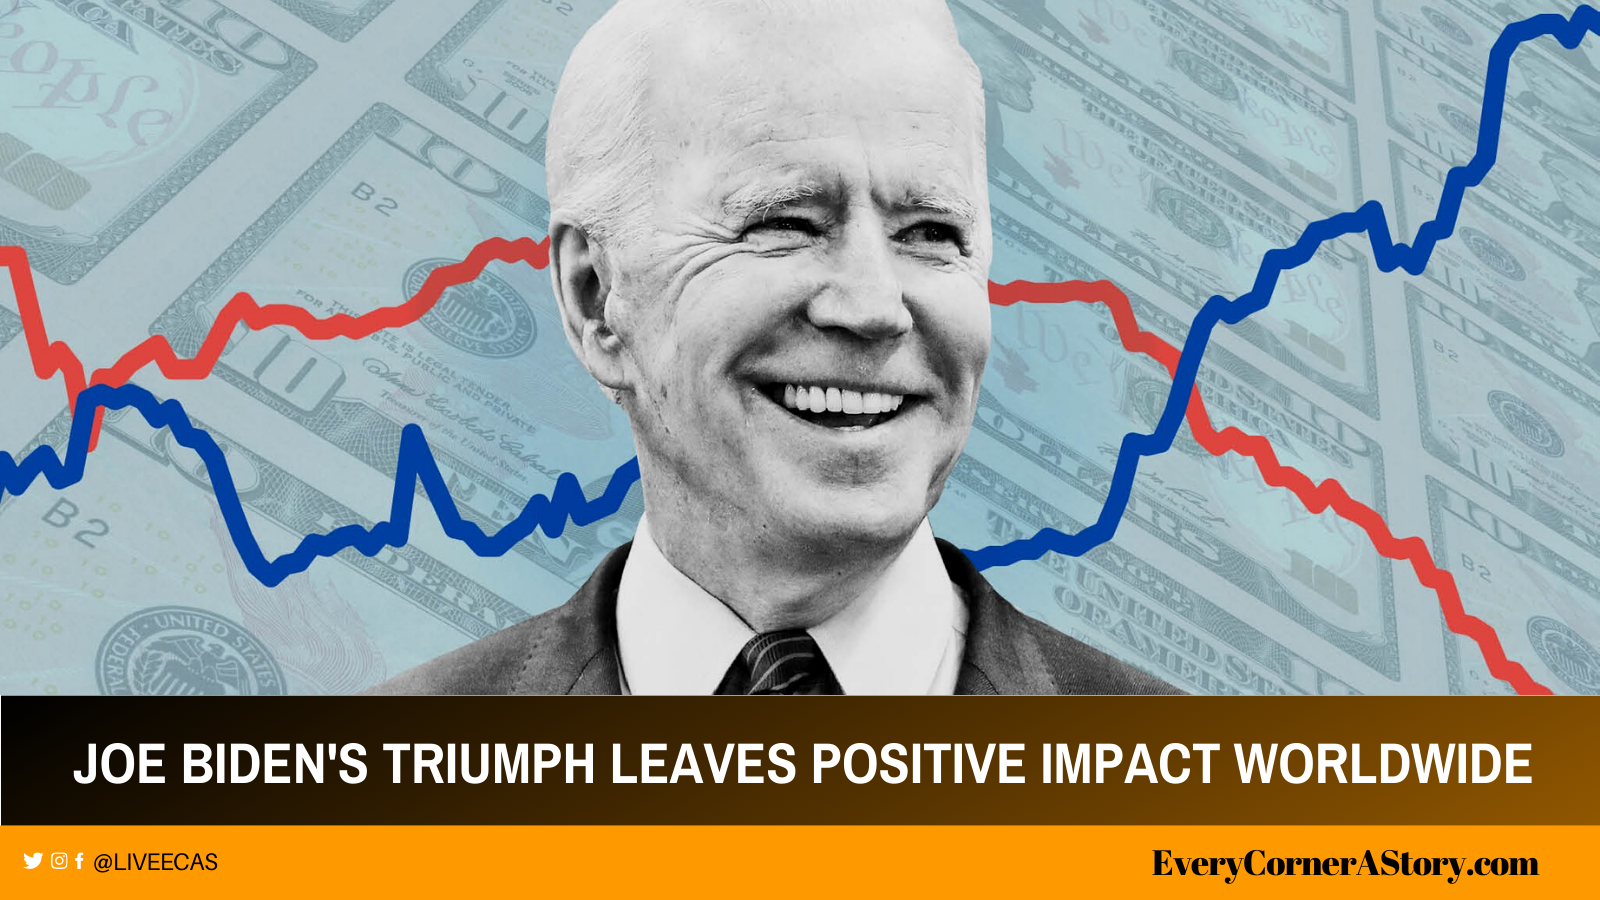 joe biden sensex insights indian market impact worldwide breaking news every corner a story